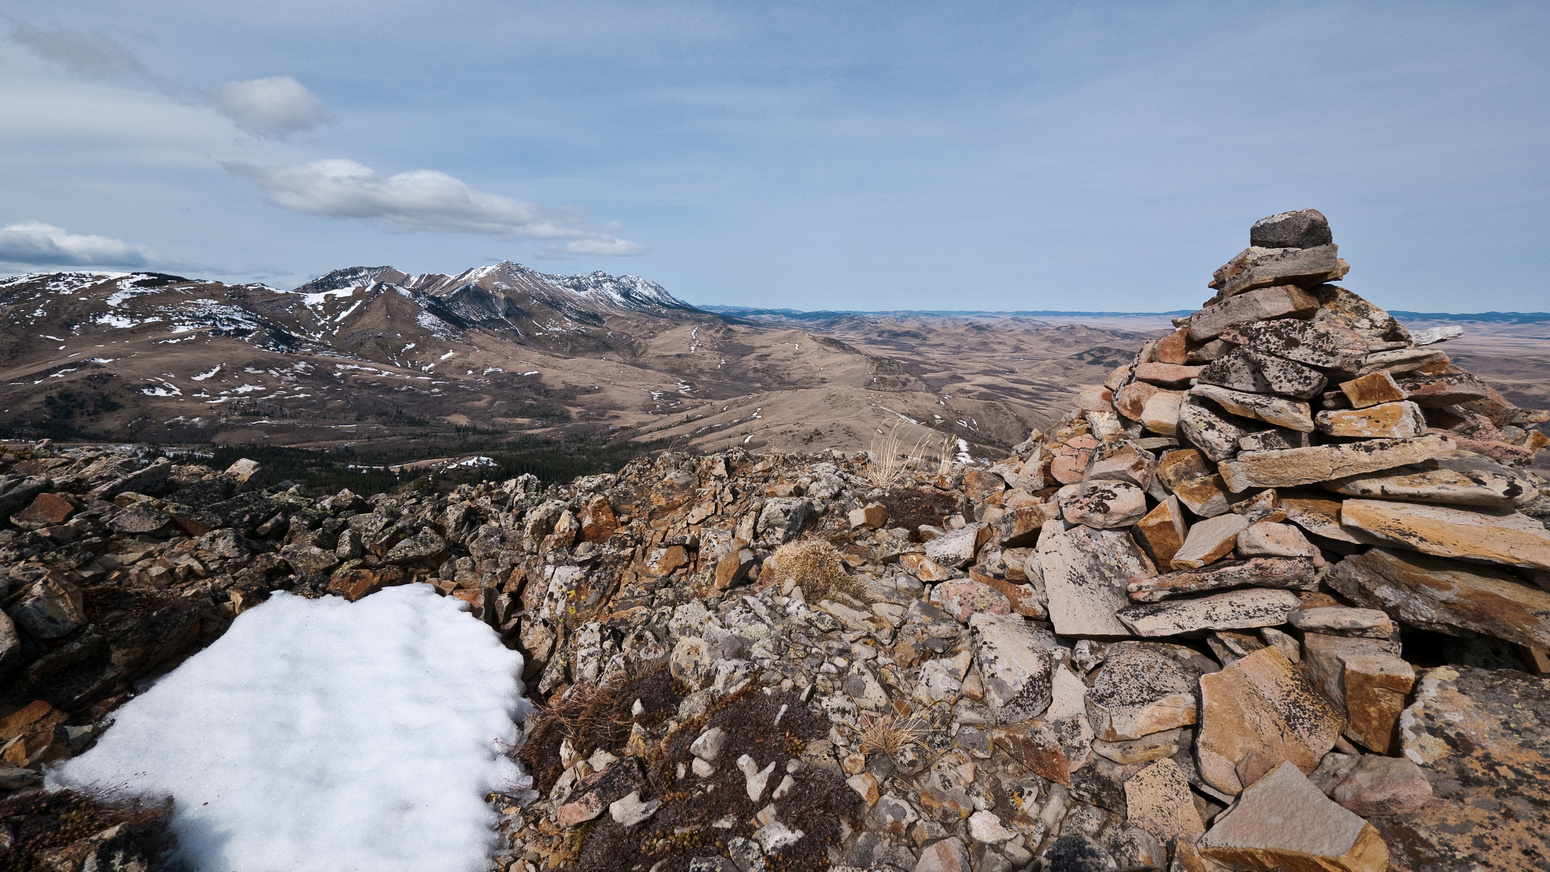 Summit cairn on Robertson looking North towards Caudron and Center Peaks.